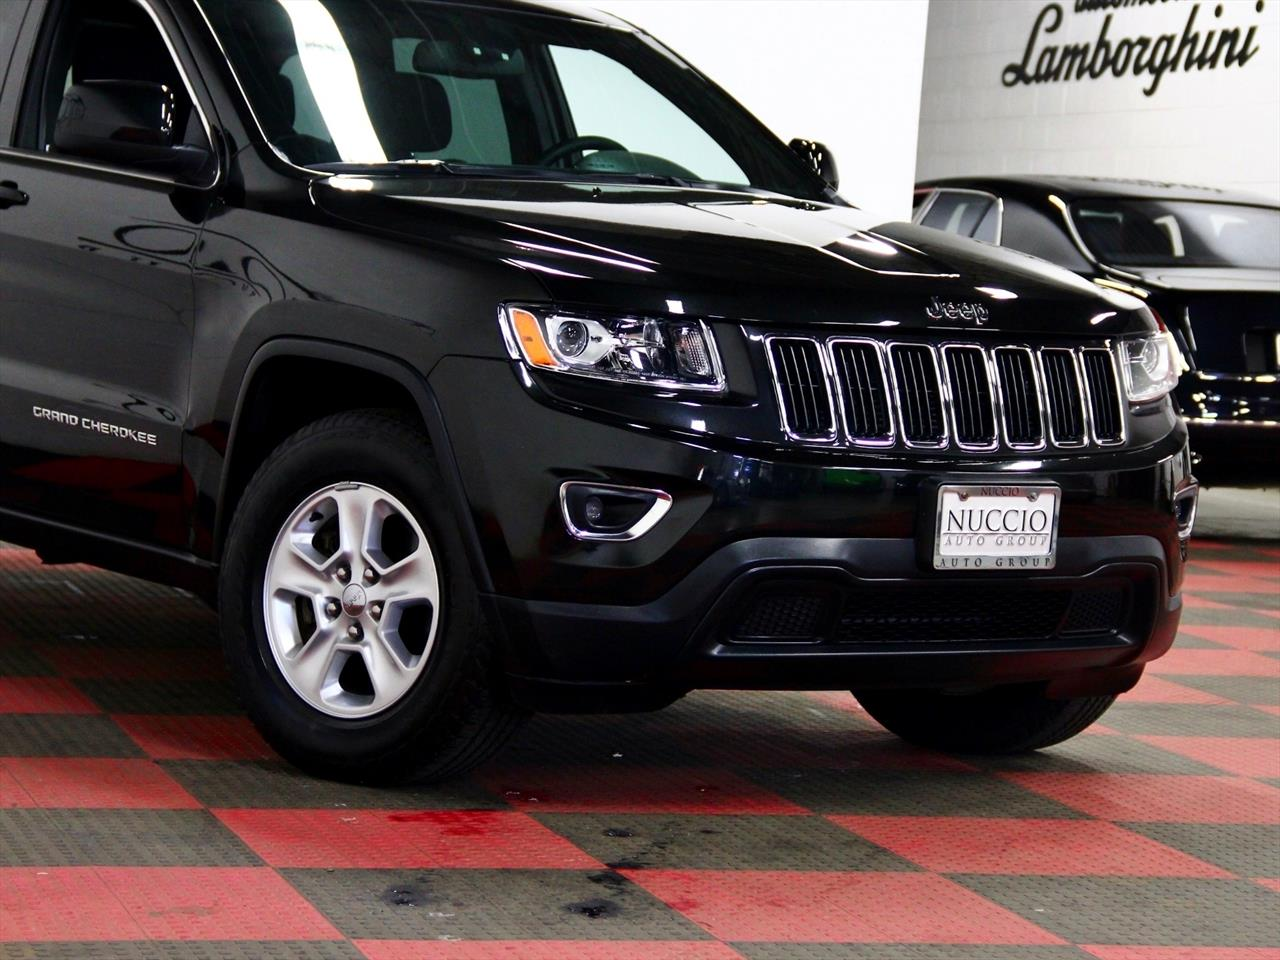 2014 jeep grand cherokee laredo 4x4. Black Bedroom Furniture Sets. Home Design Ideas